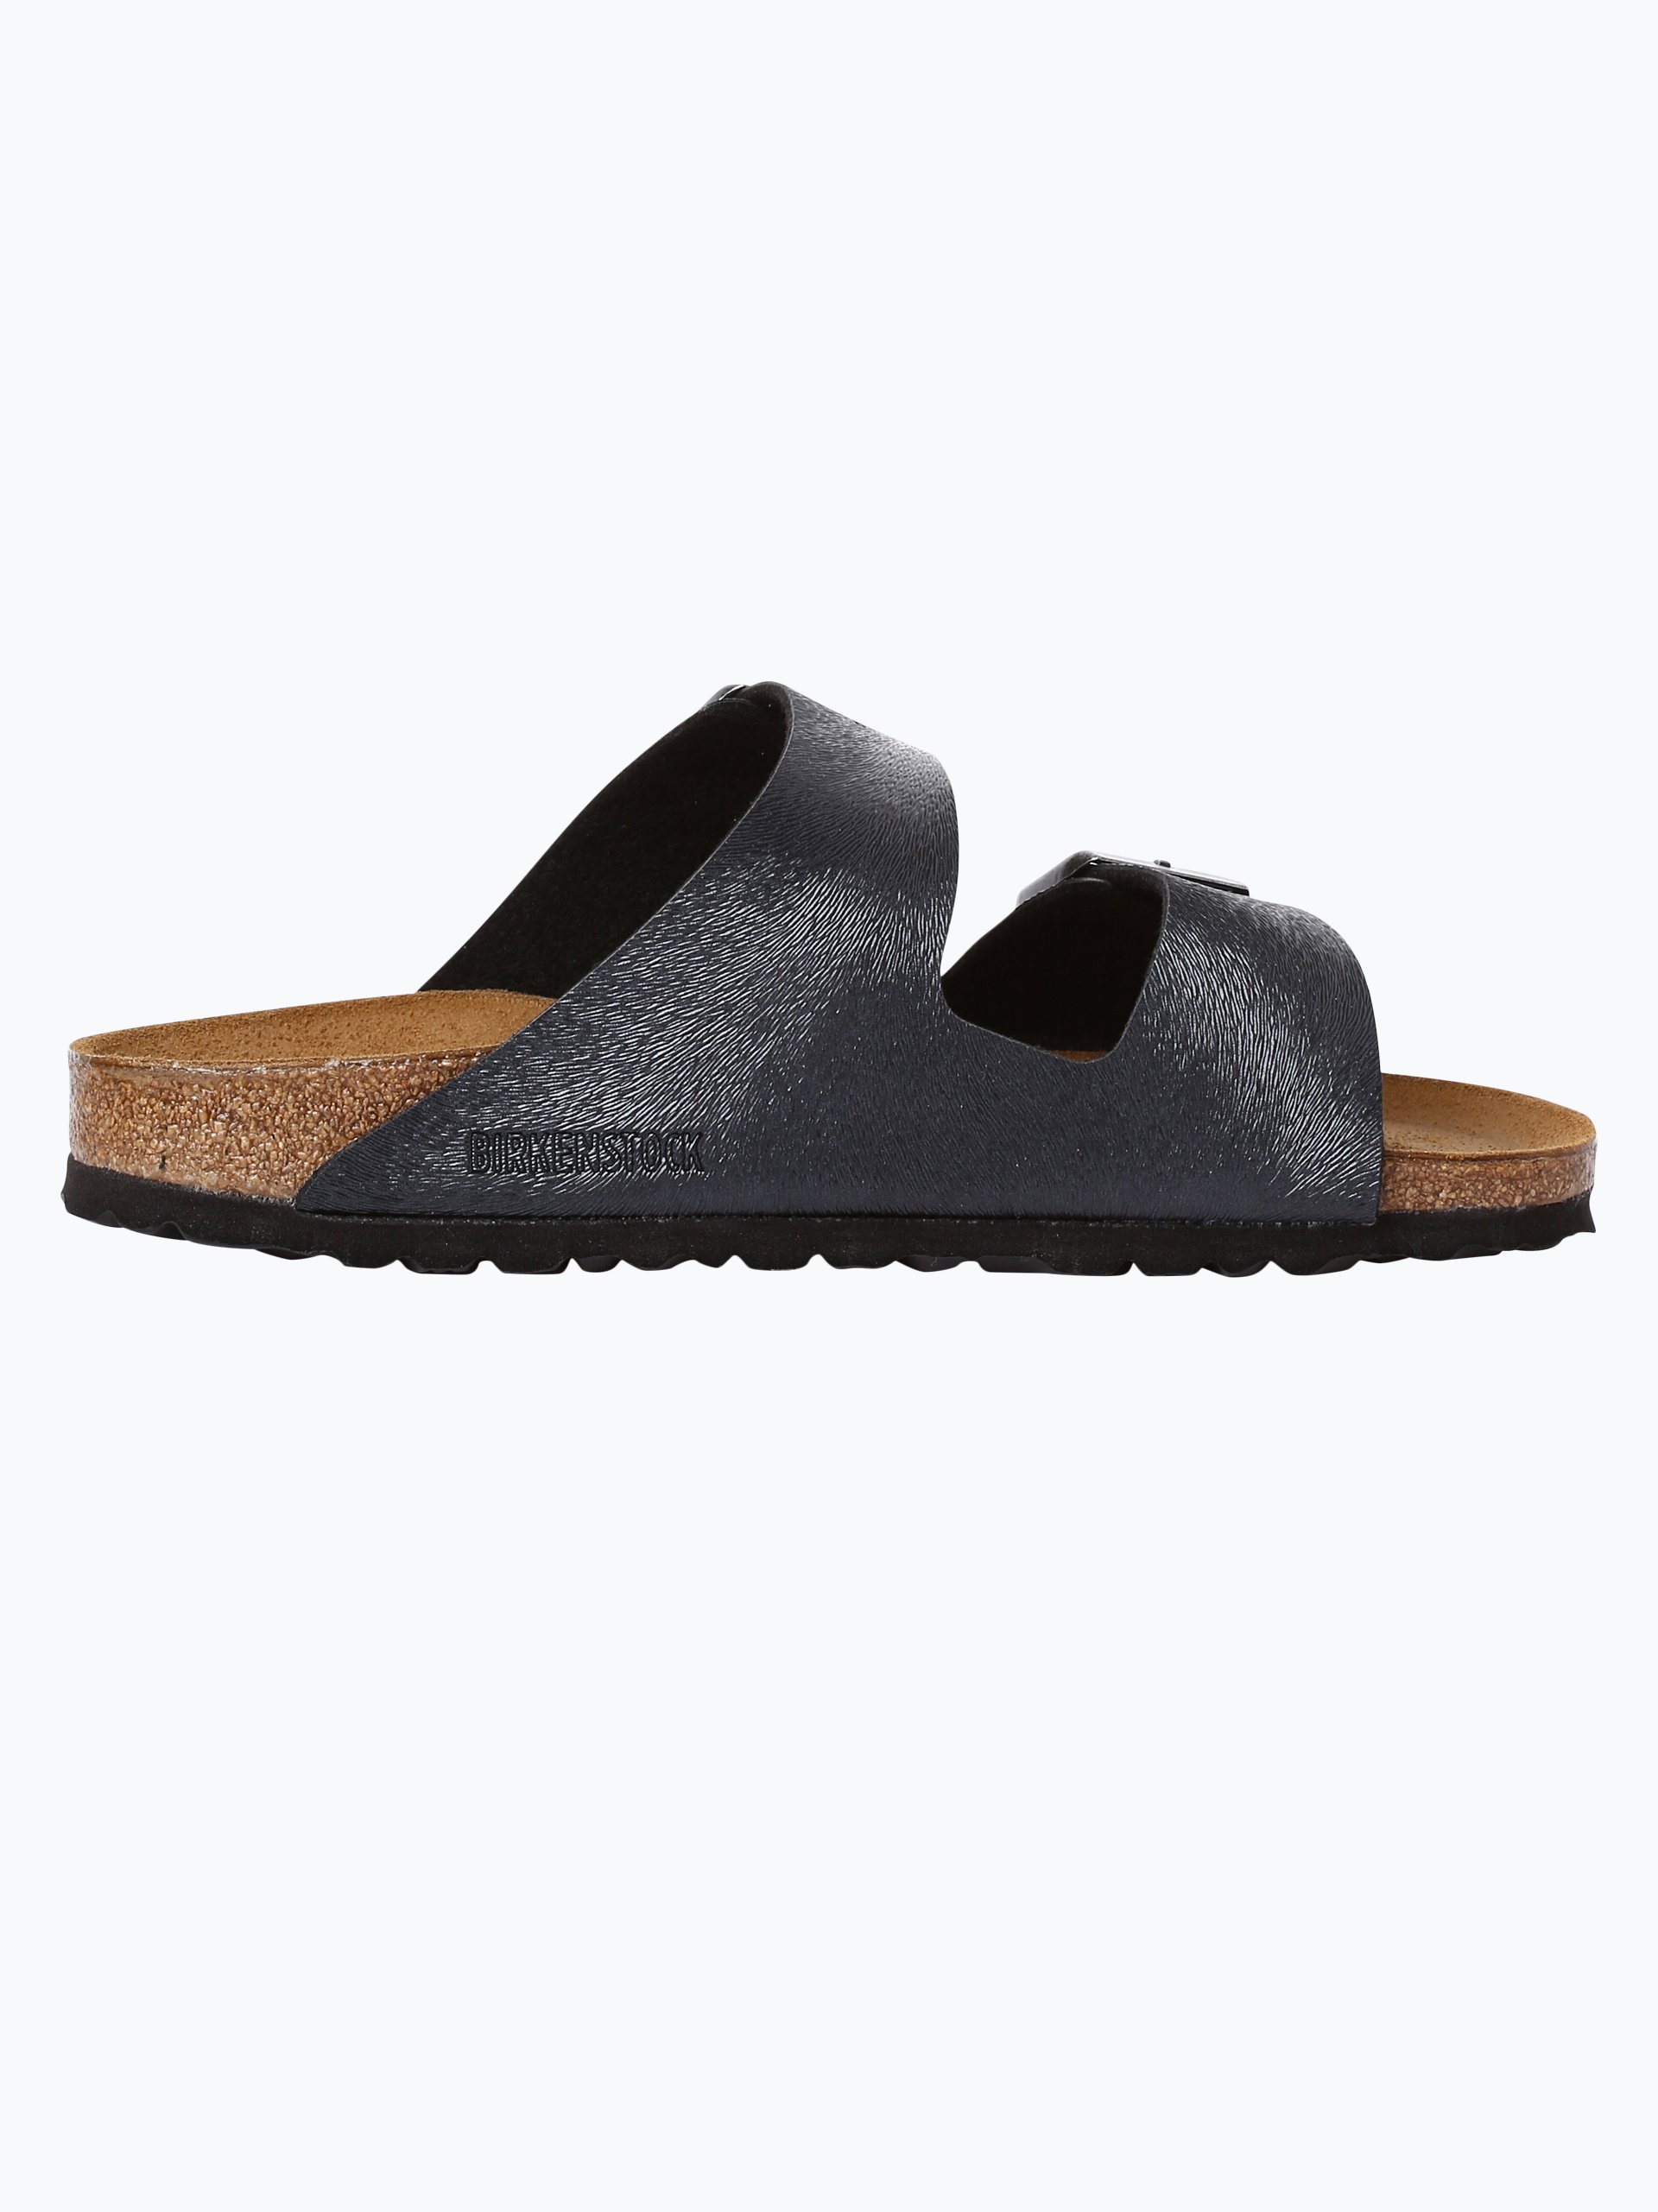 birkenstock damen sandalen mit leder anteil arizona bs anthrazit uni online kaufen vangraaf com. Black Bedroom Furniture Sets. Home Design Ideas